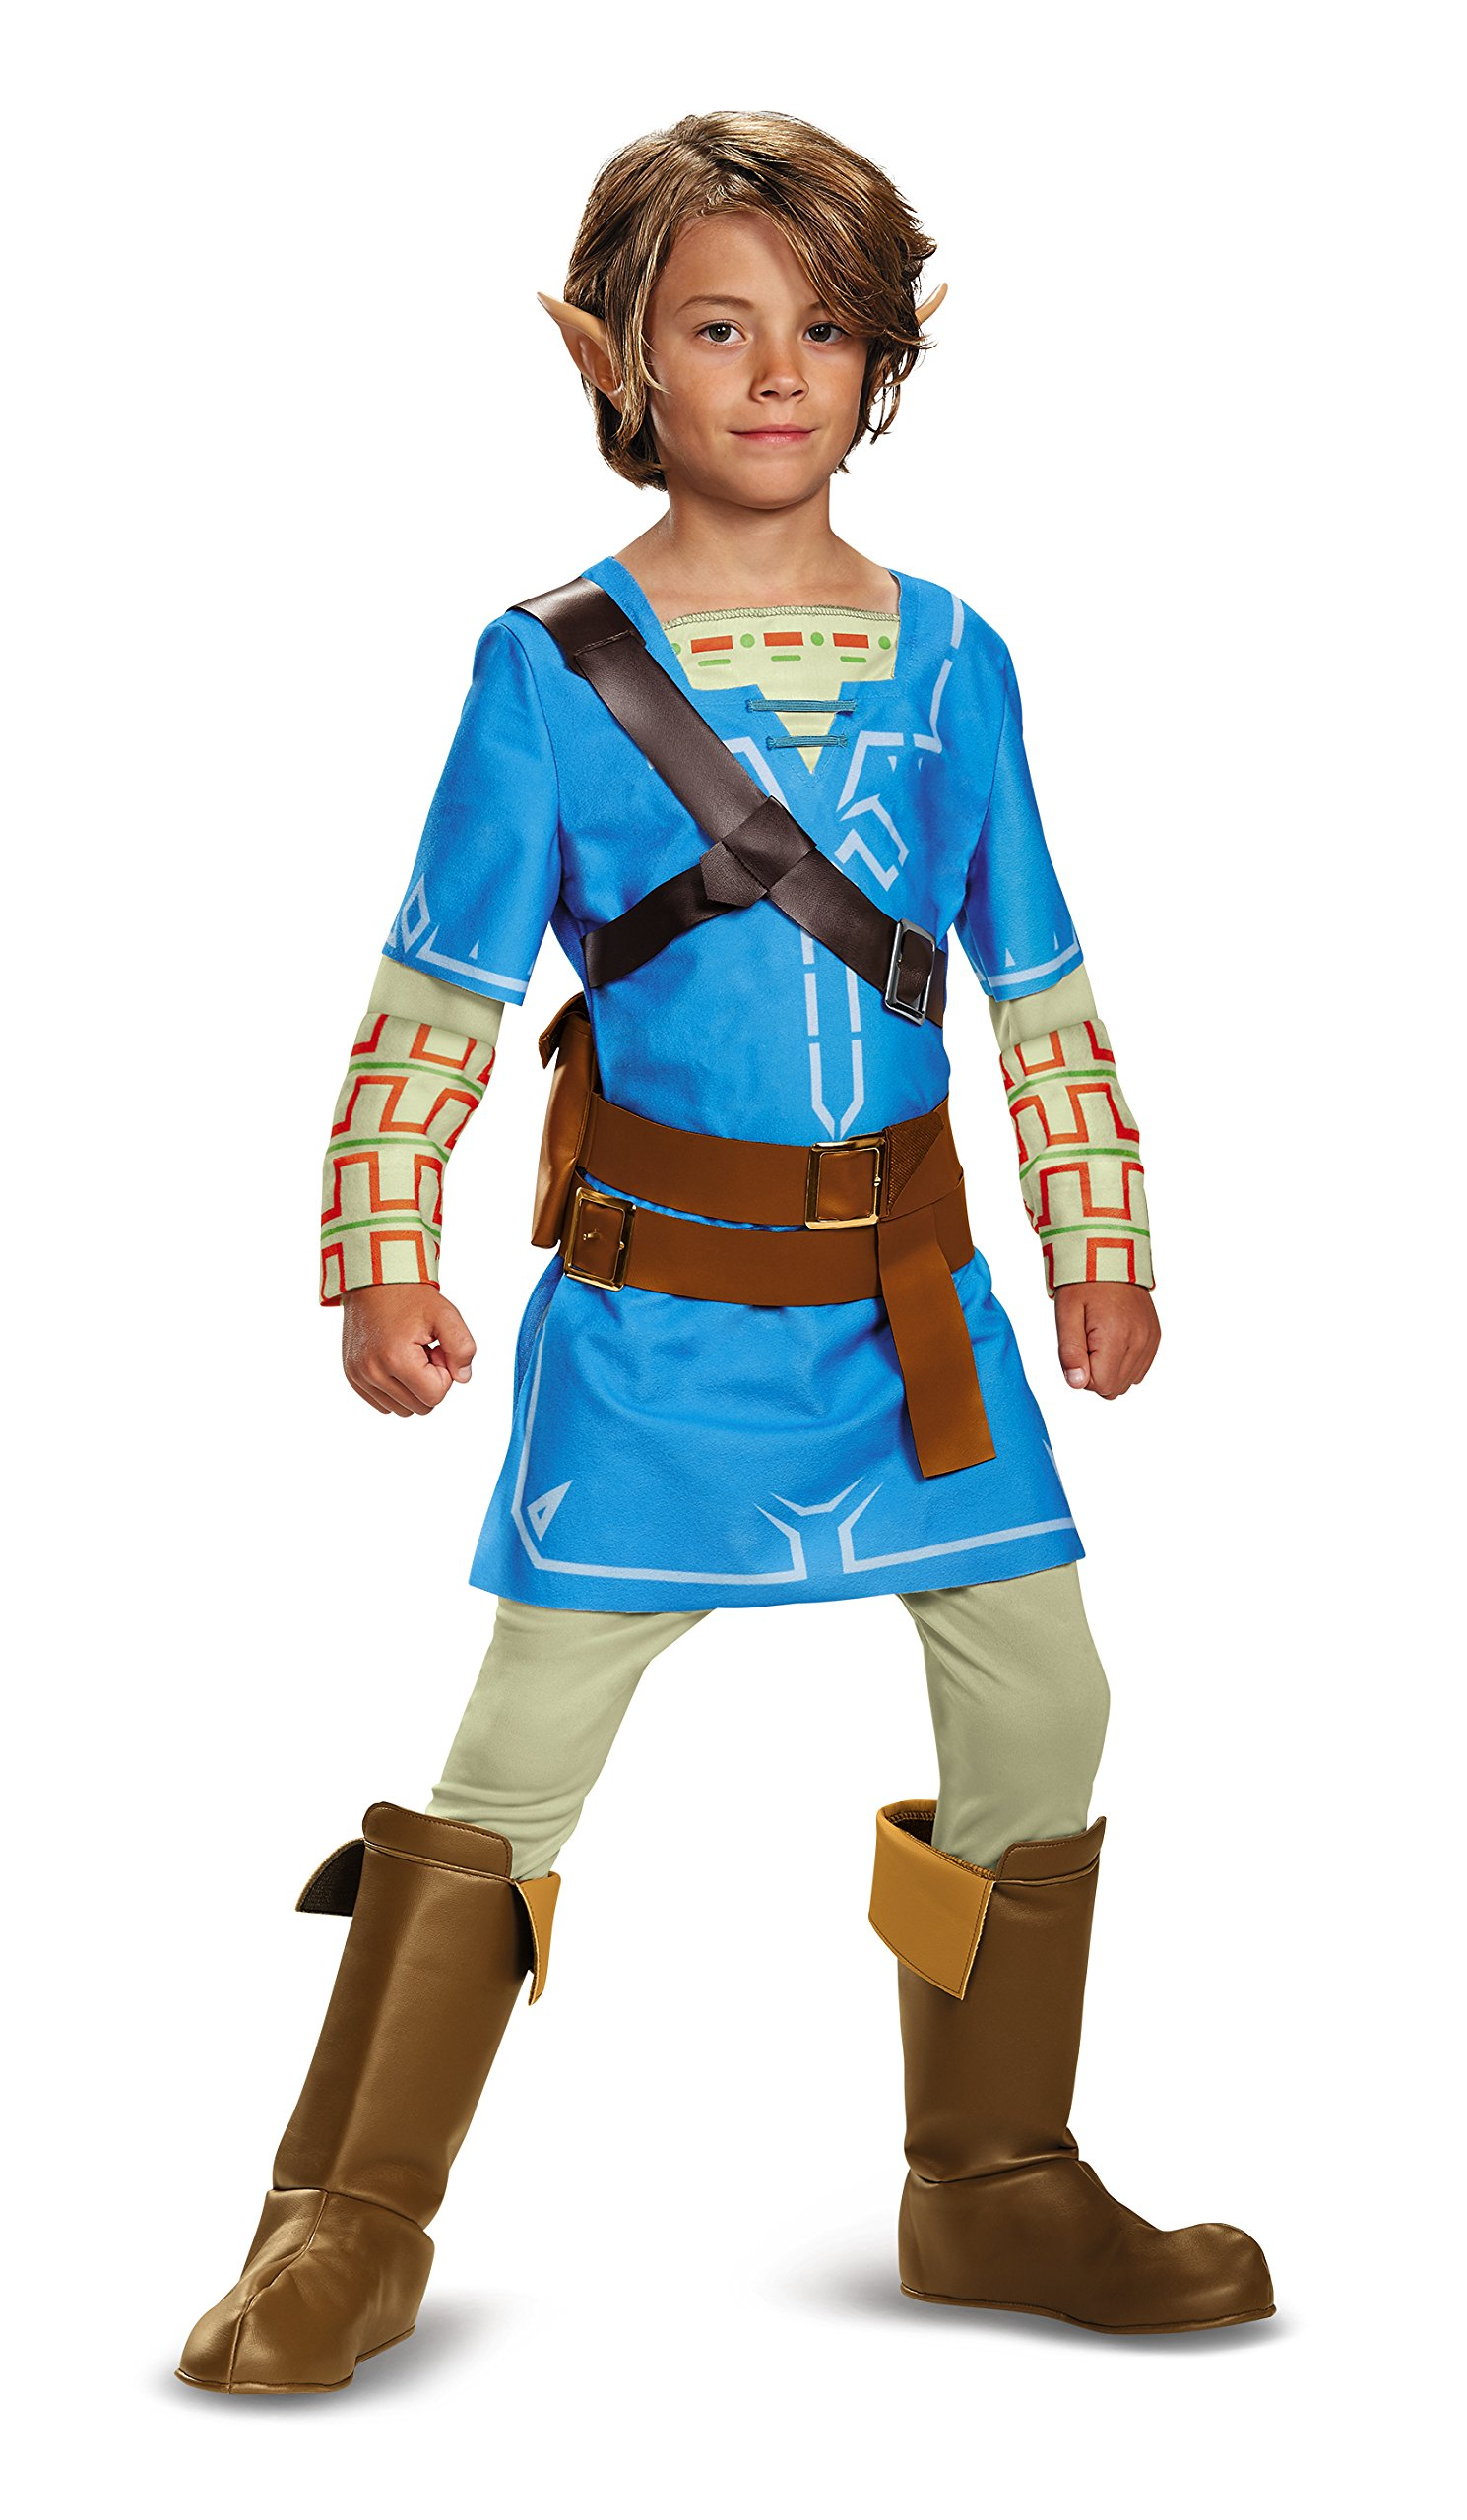 Disguise Link Breath The Wild Deluxe Costume, Blue, Small (4-6)